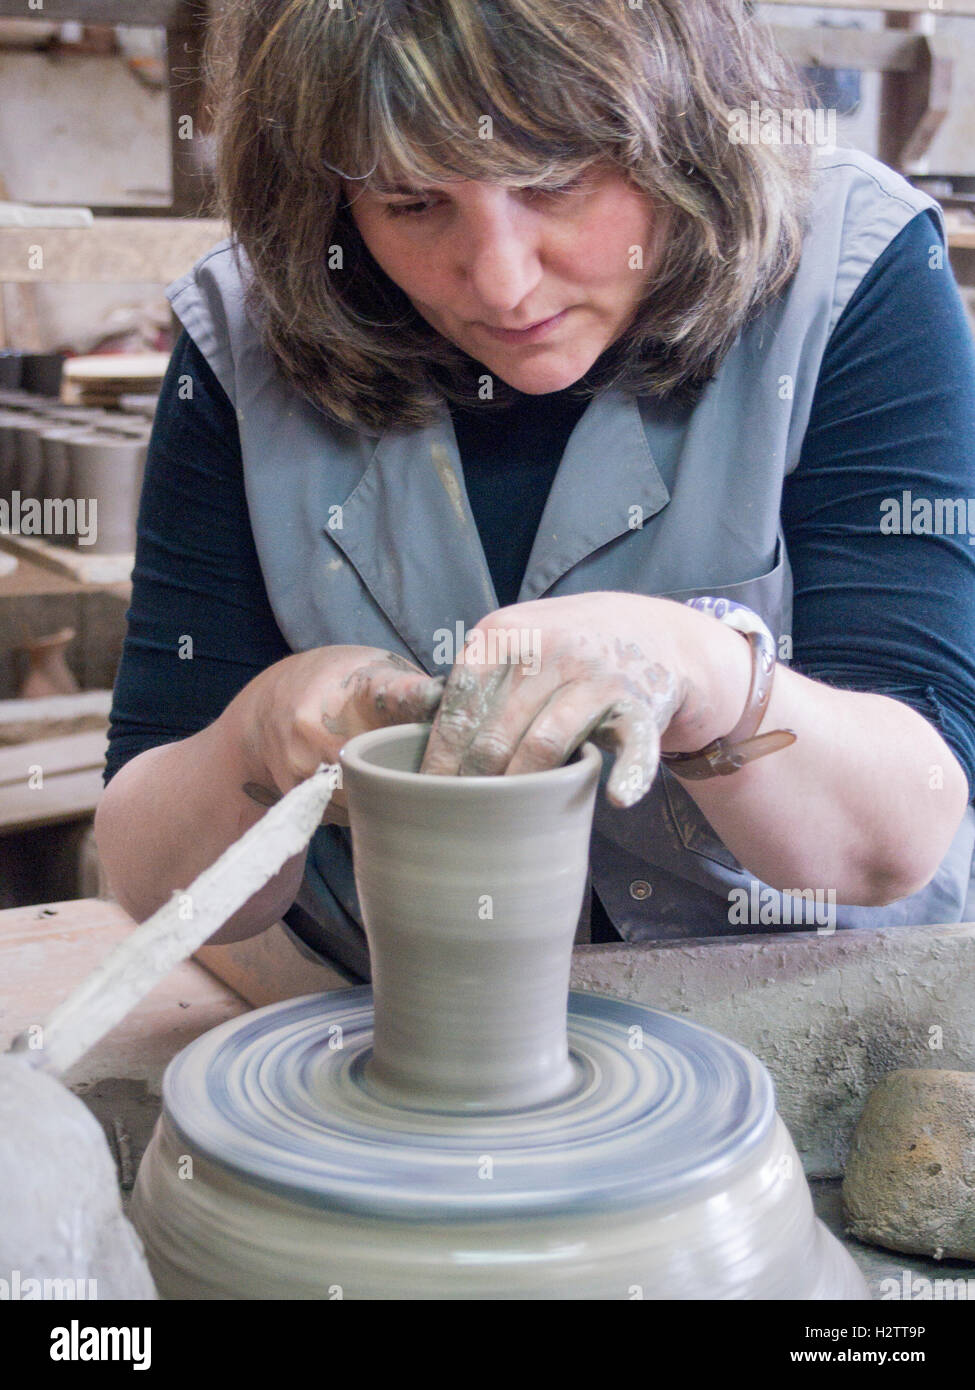 Throwing a pot on a pottery wheel. A craftswoman raises the edges of a tumbler on a spinning wheel. Her hands are - Stock Photo